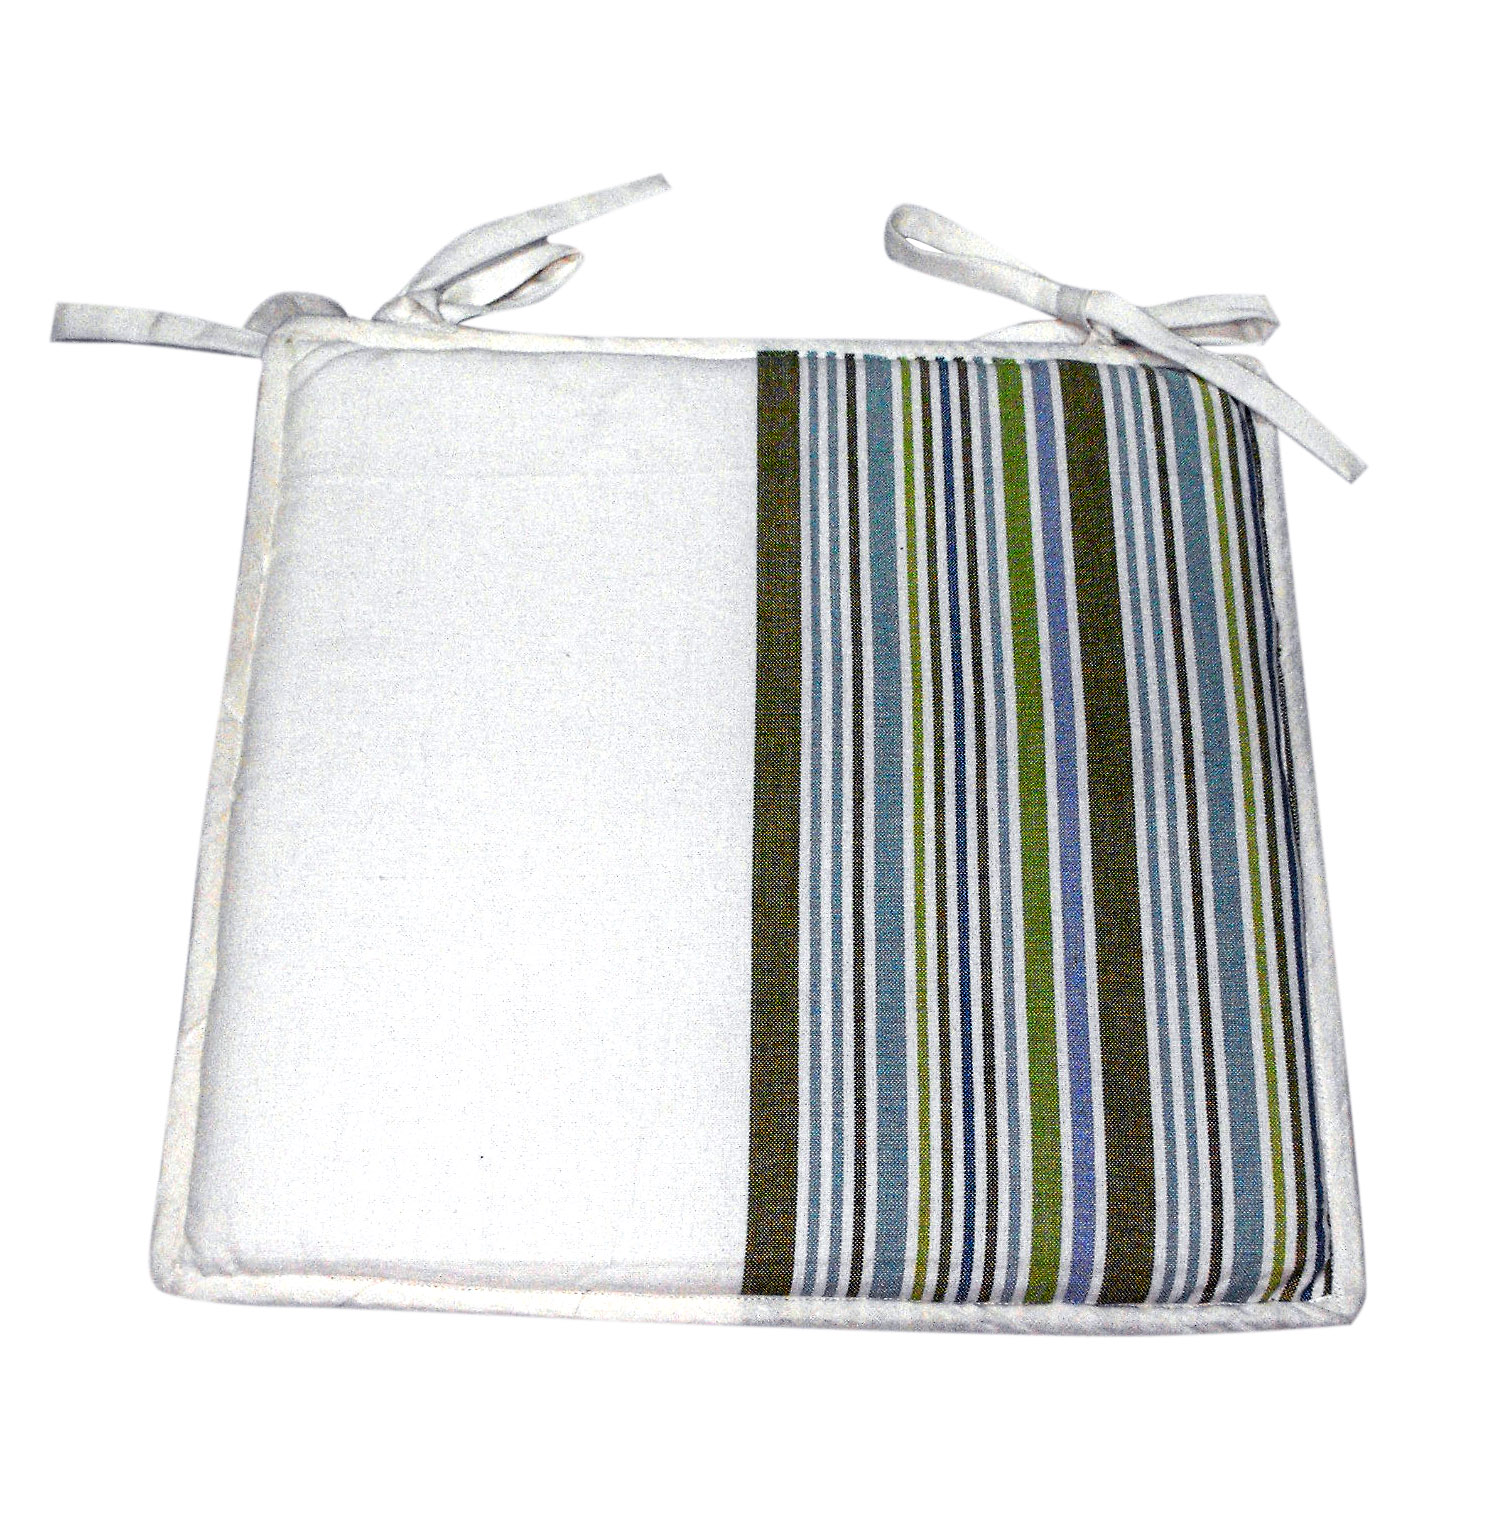 Terry cloth kitchen towels Photo - 6